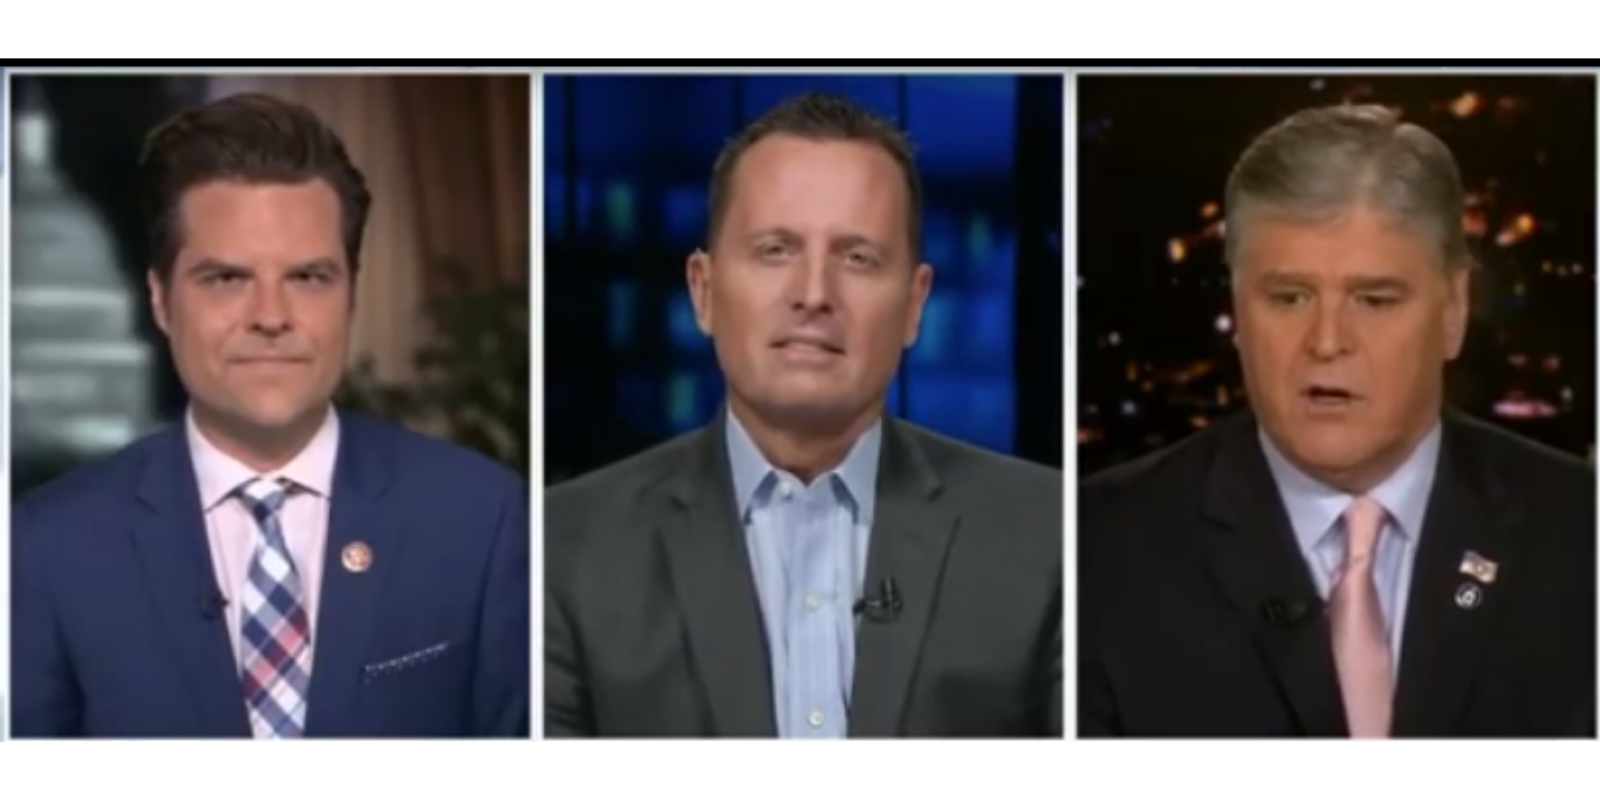 WATCH: Ric Grenell and Matt Gaetz slam Eric Swalwell, suggest there are other powerful figures compromised by China